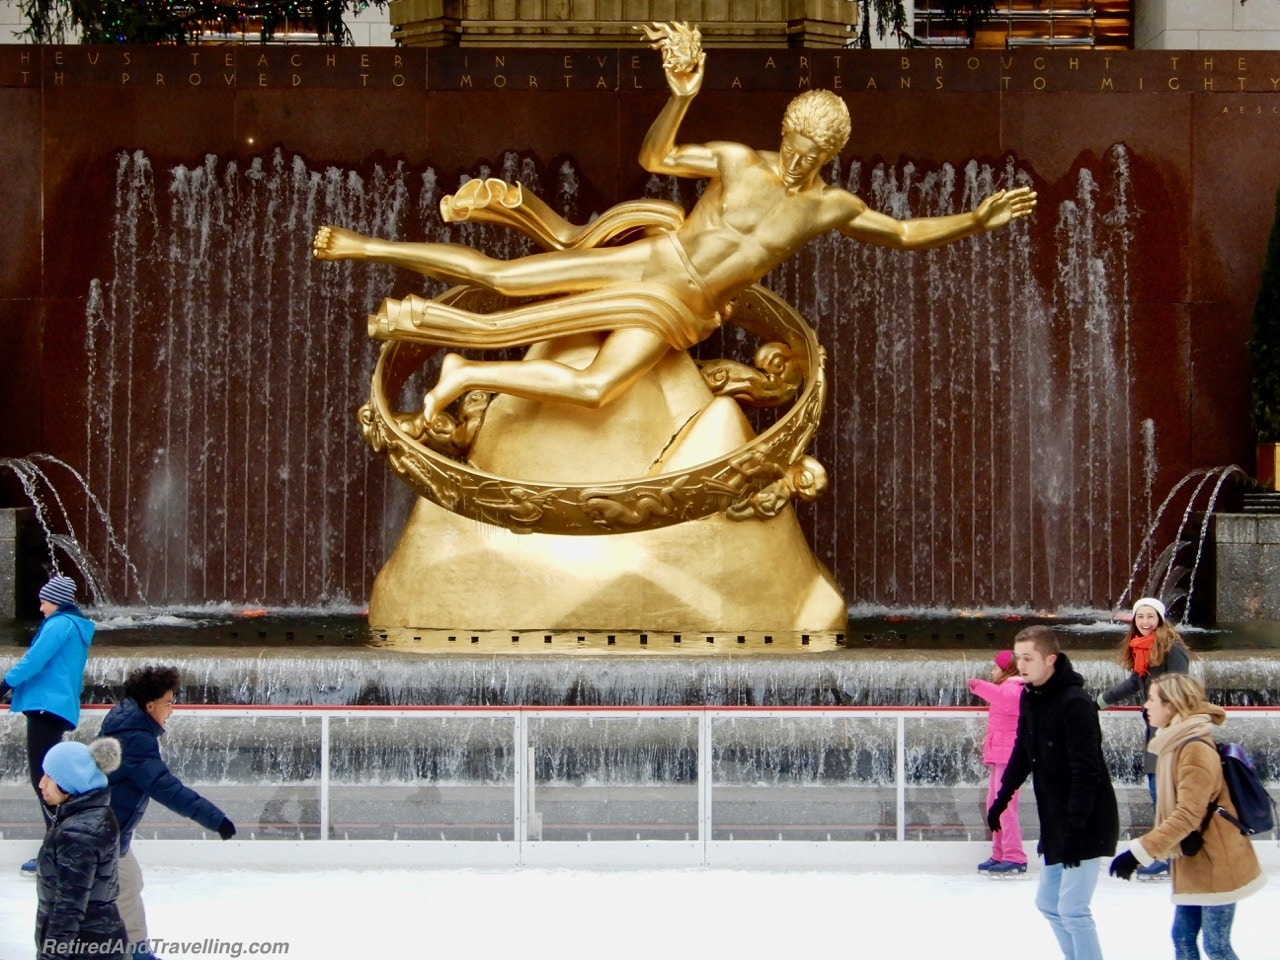 Prometheus Statue Rockefeller Centre Christmas Tree and Decor - Holiday Visit To NYC.jpg